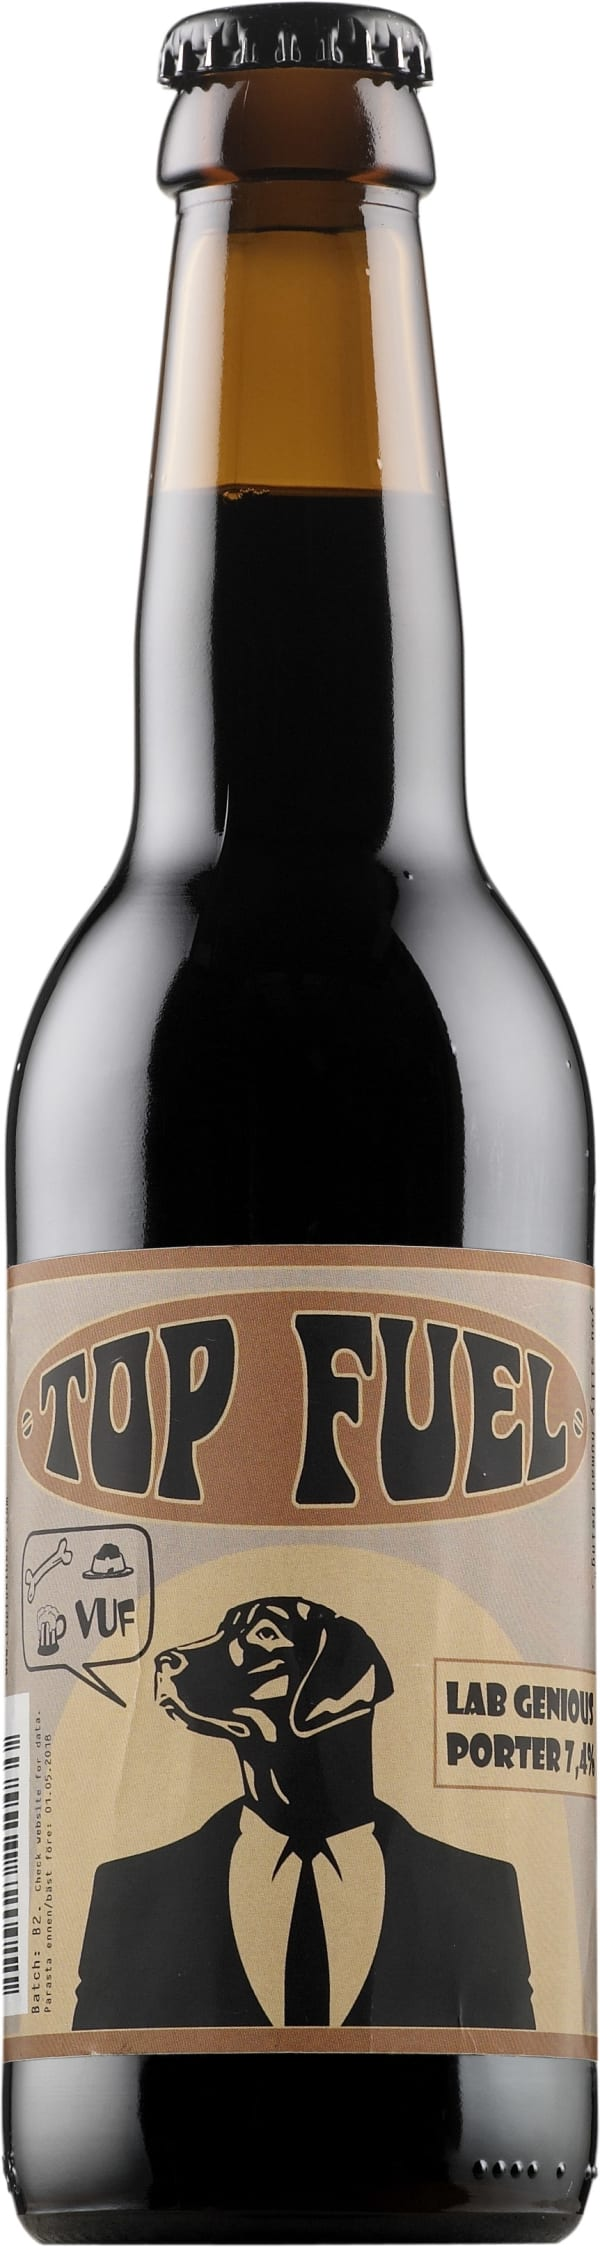 Top Fuel Lab Genious Porter